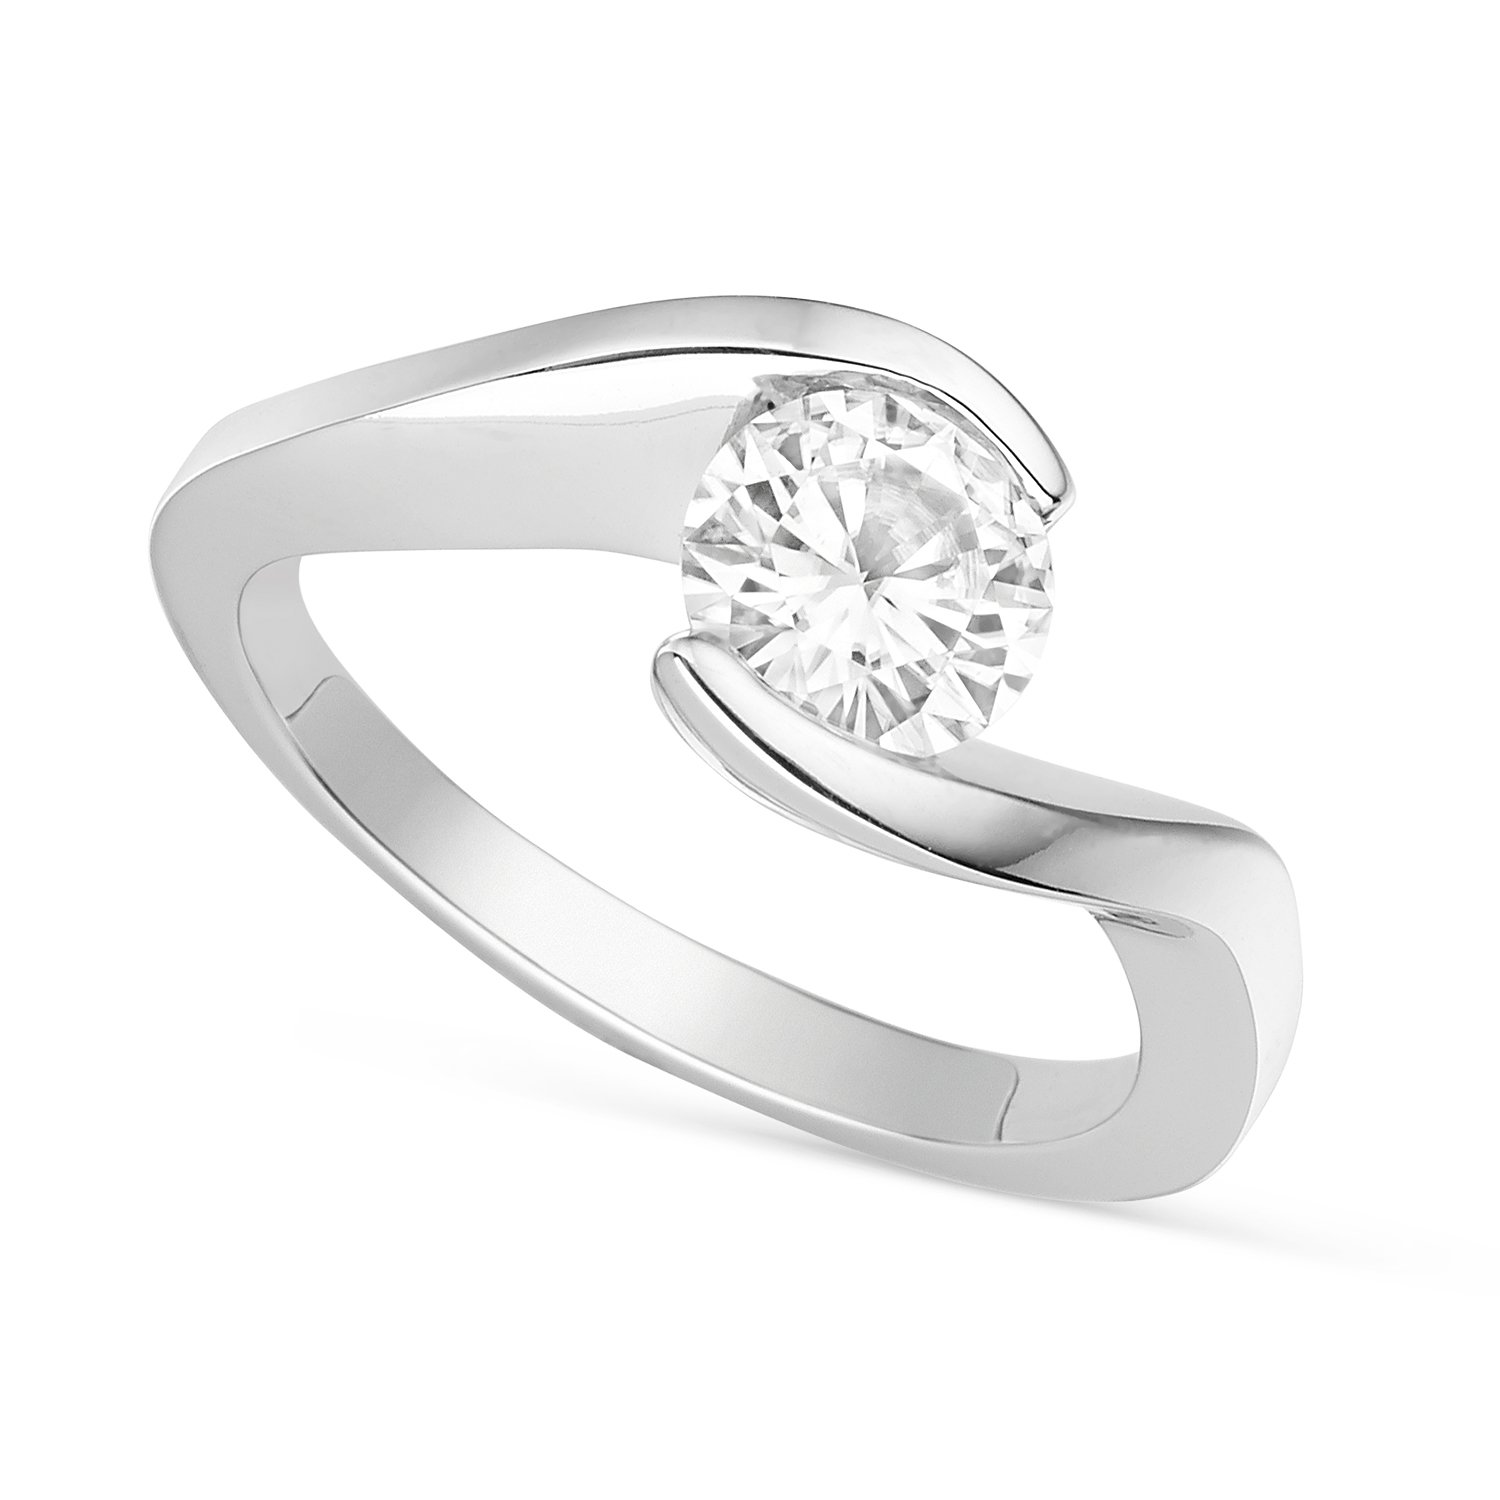 Forever Brilliant Round 6.5mm Moissanite Engagement Ring - size 8, 1.00ct DEW By Charles & Colvard